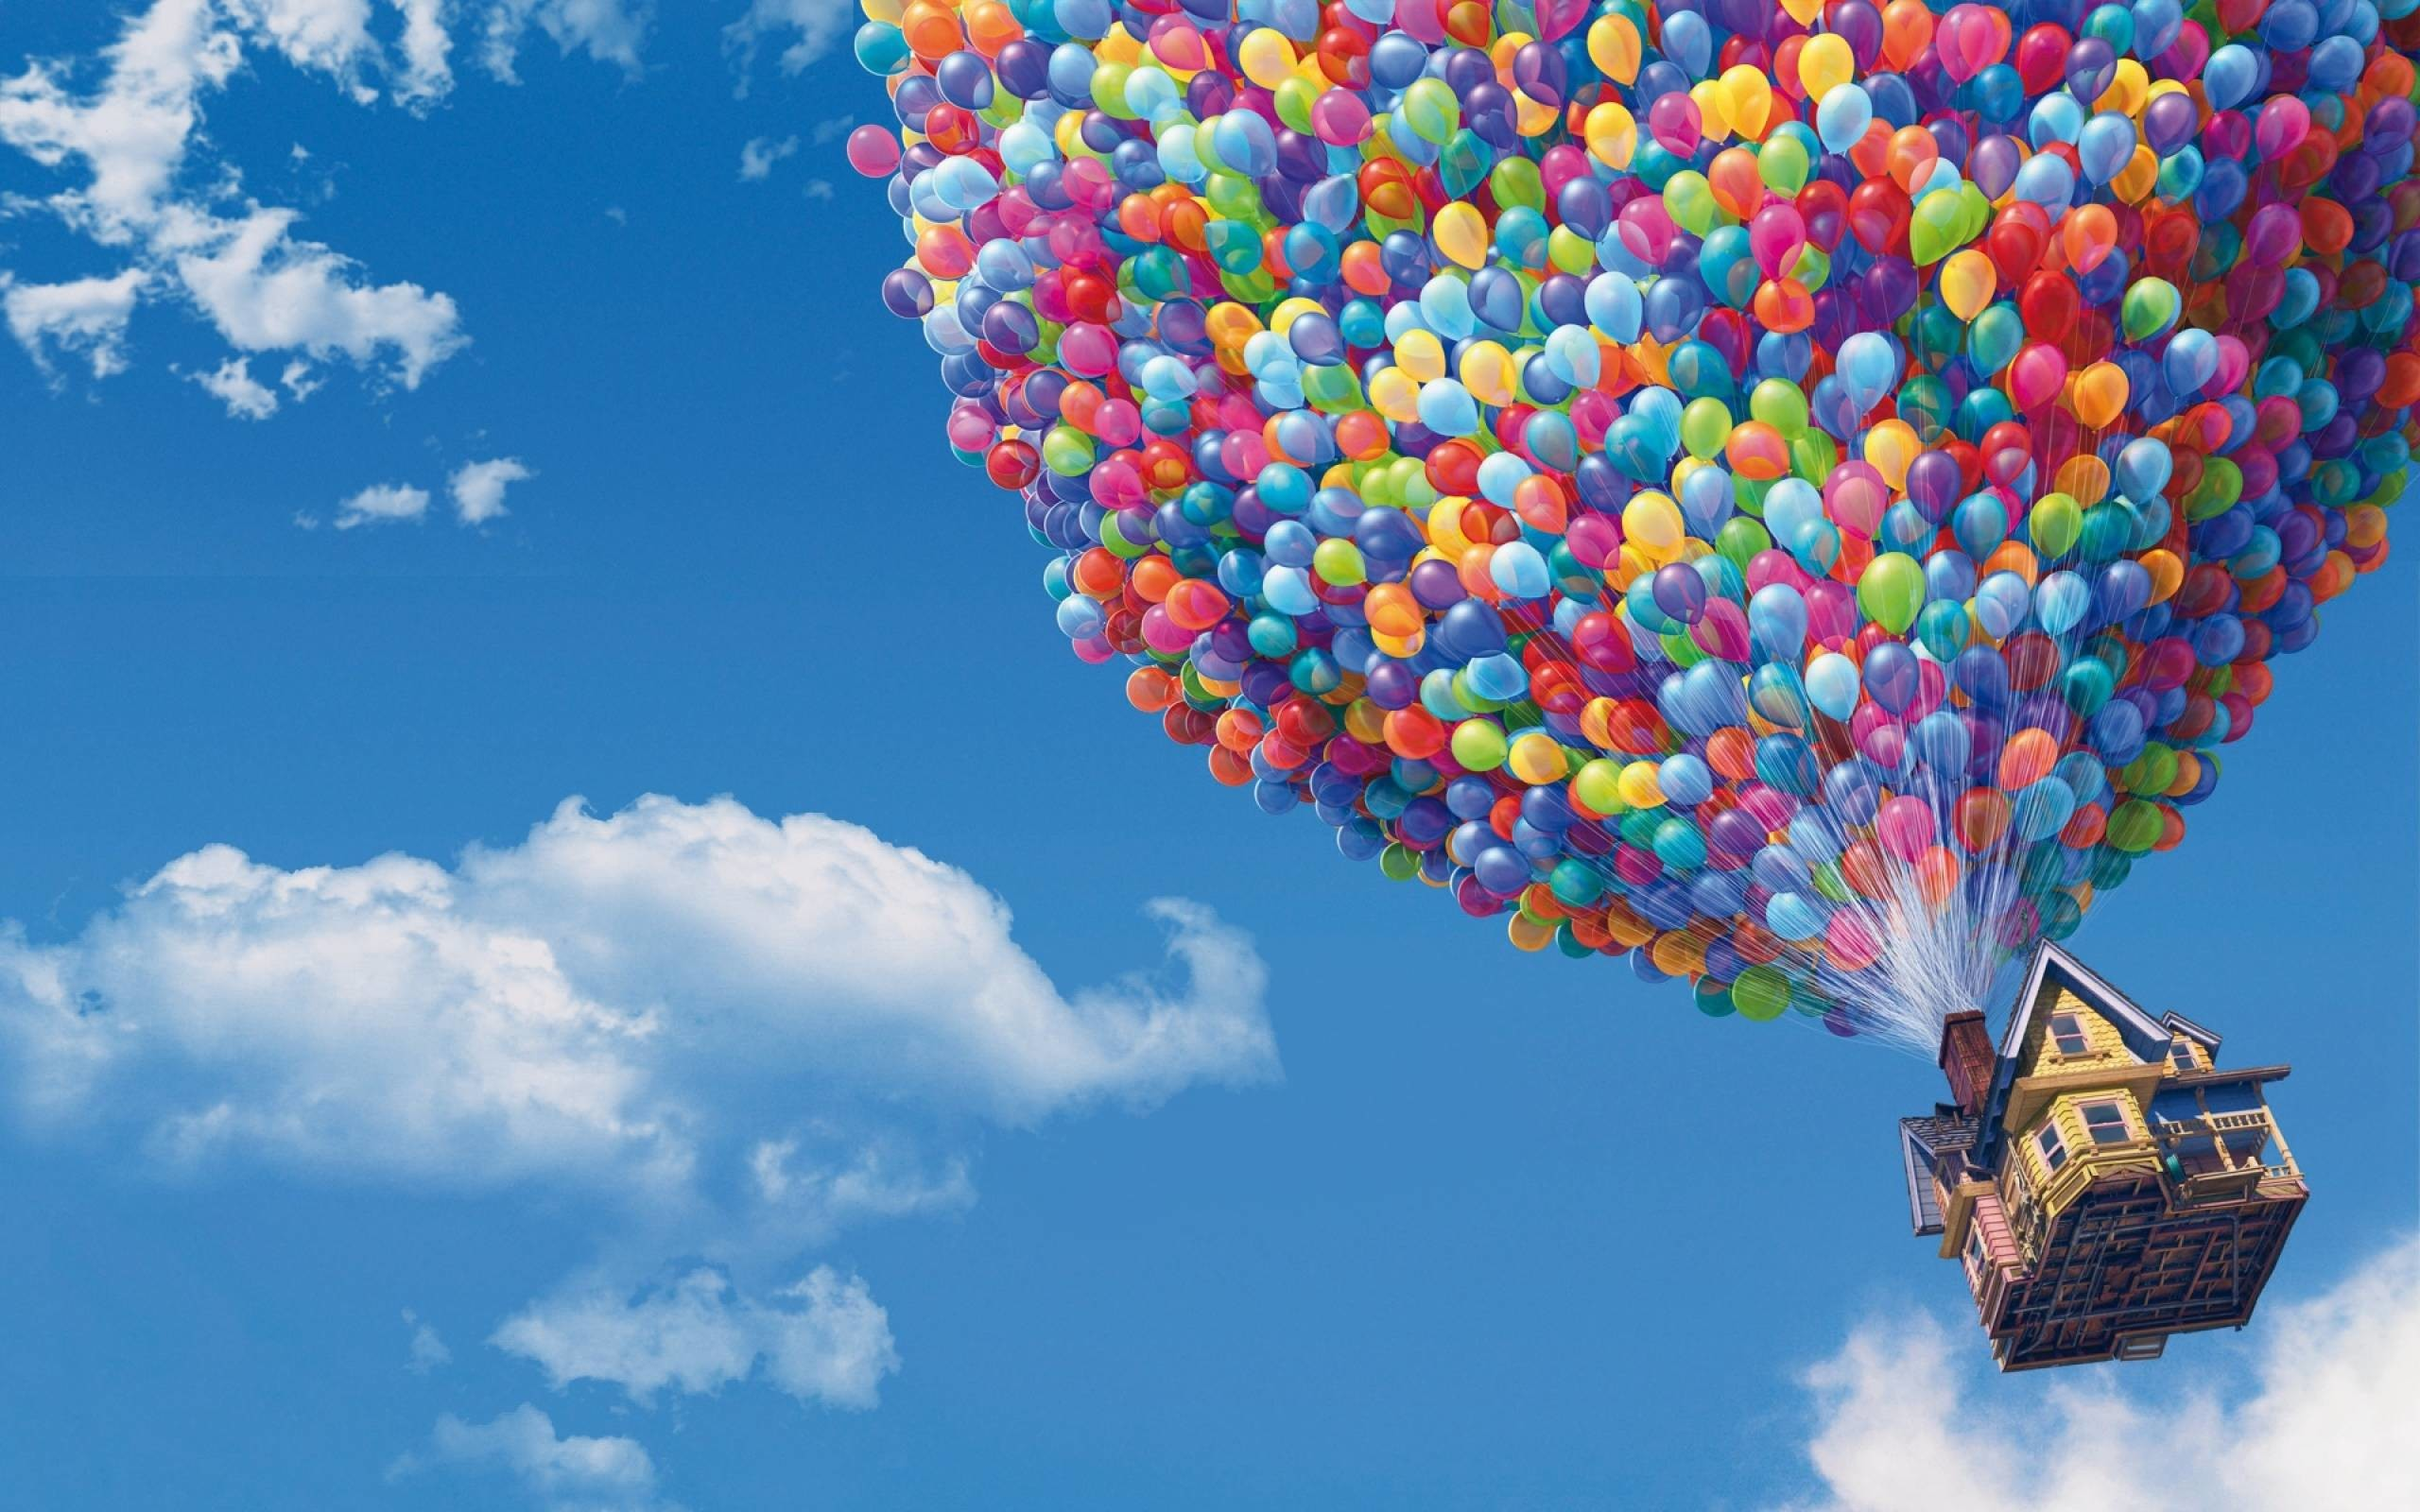 2560x1600 Most Downloaded Pixar Wallpapers - Full HD wallpaper search